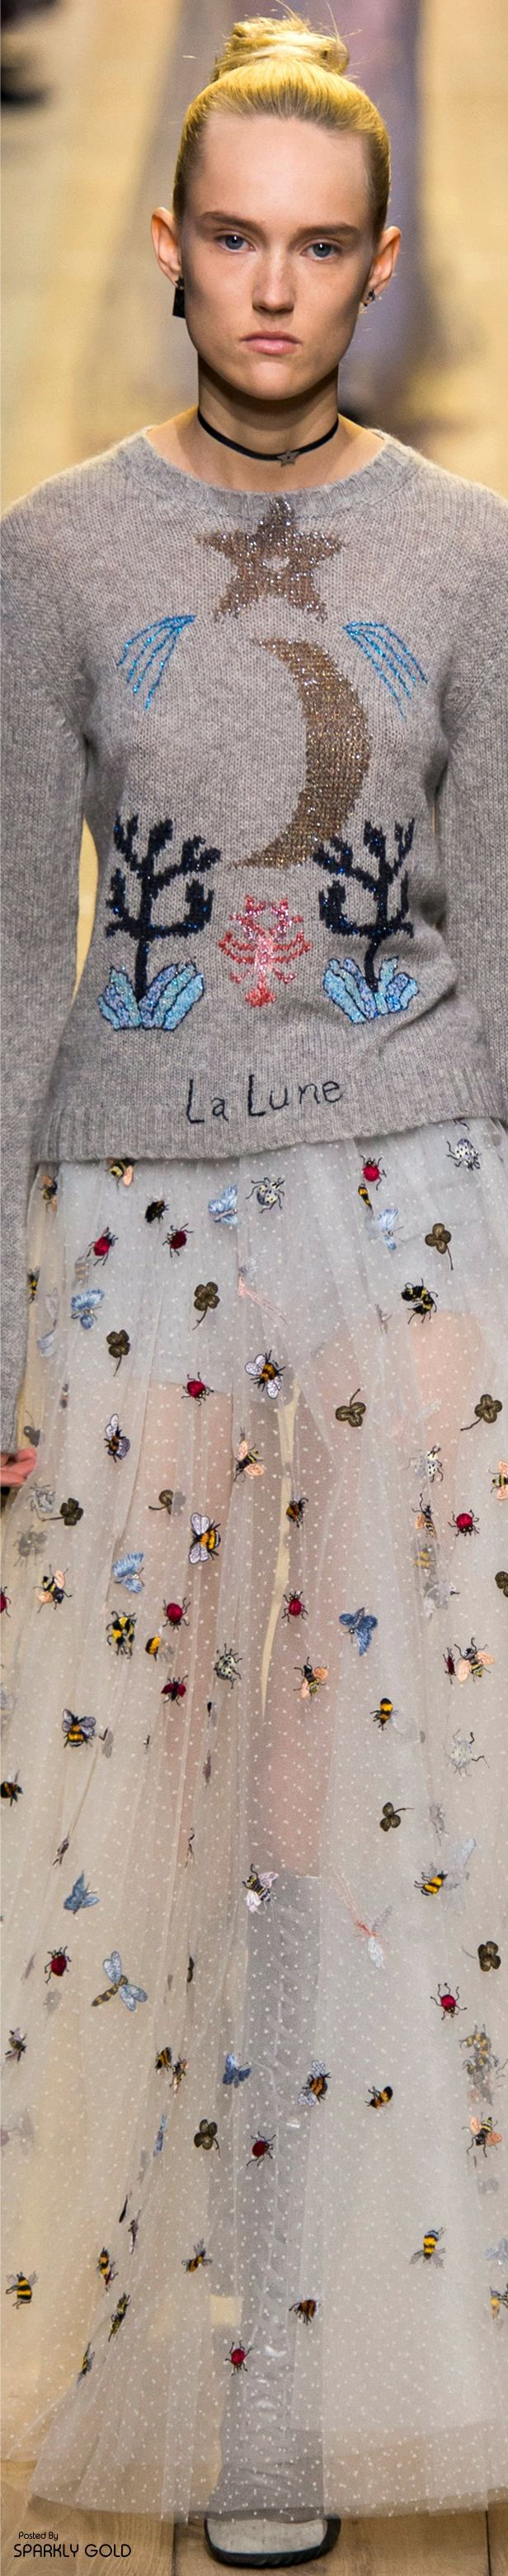 Christian Dior Spring 2017 RTW ~ETS #sweater